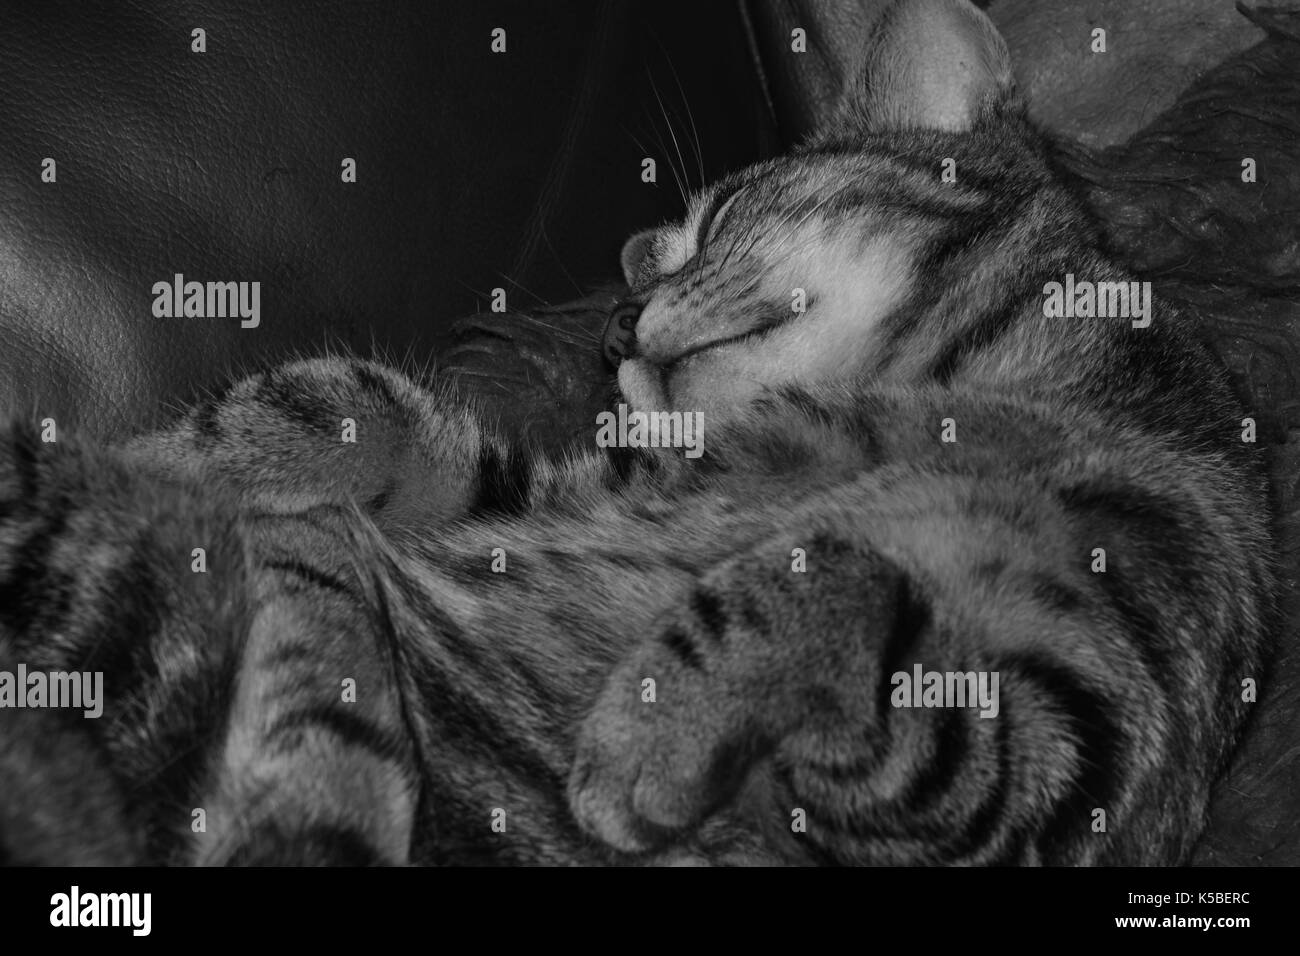 Female tabby cat sleeping on a sofa in black and white - Stock Image